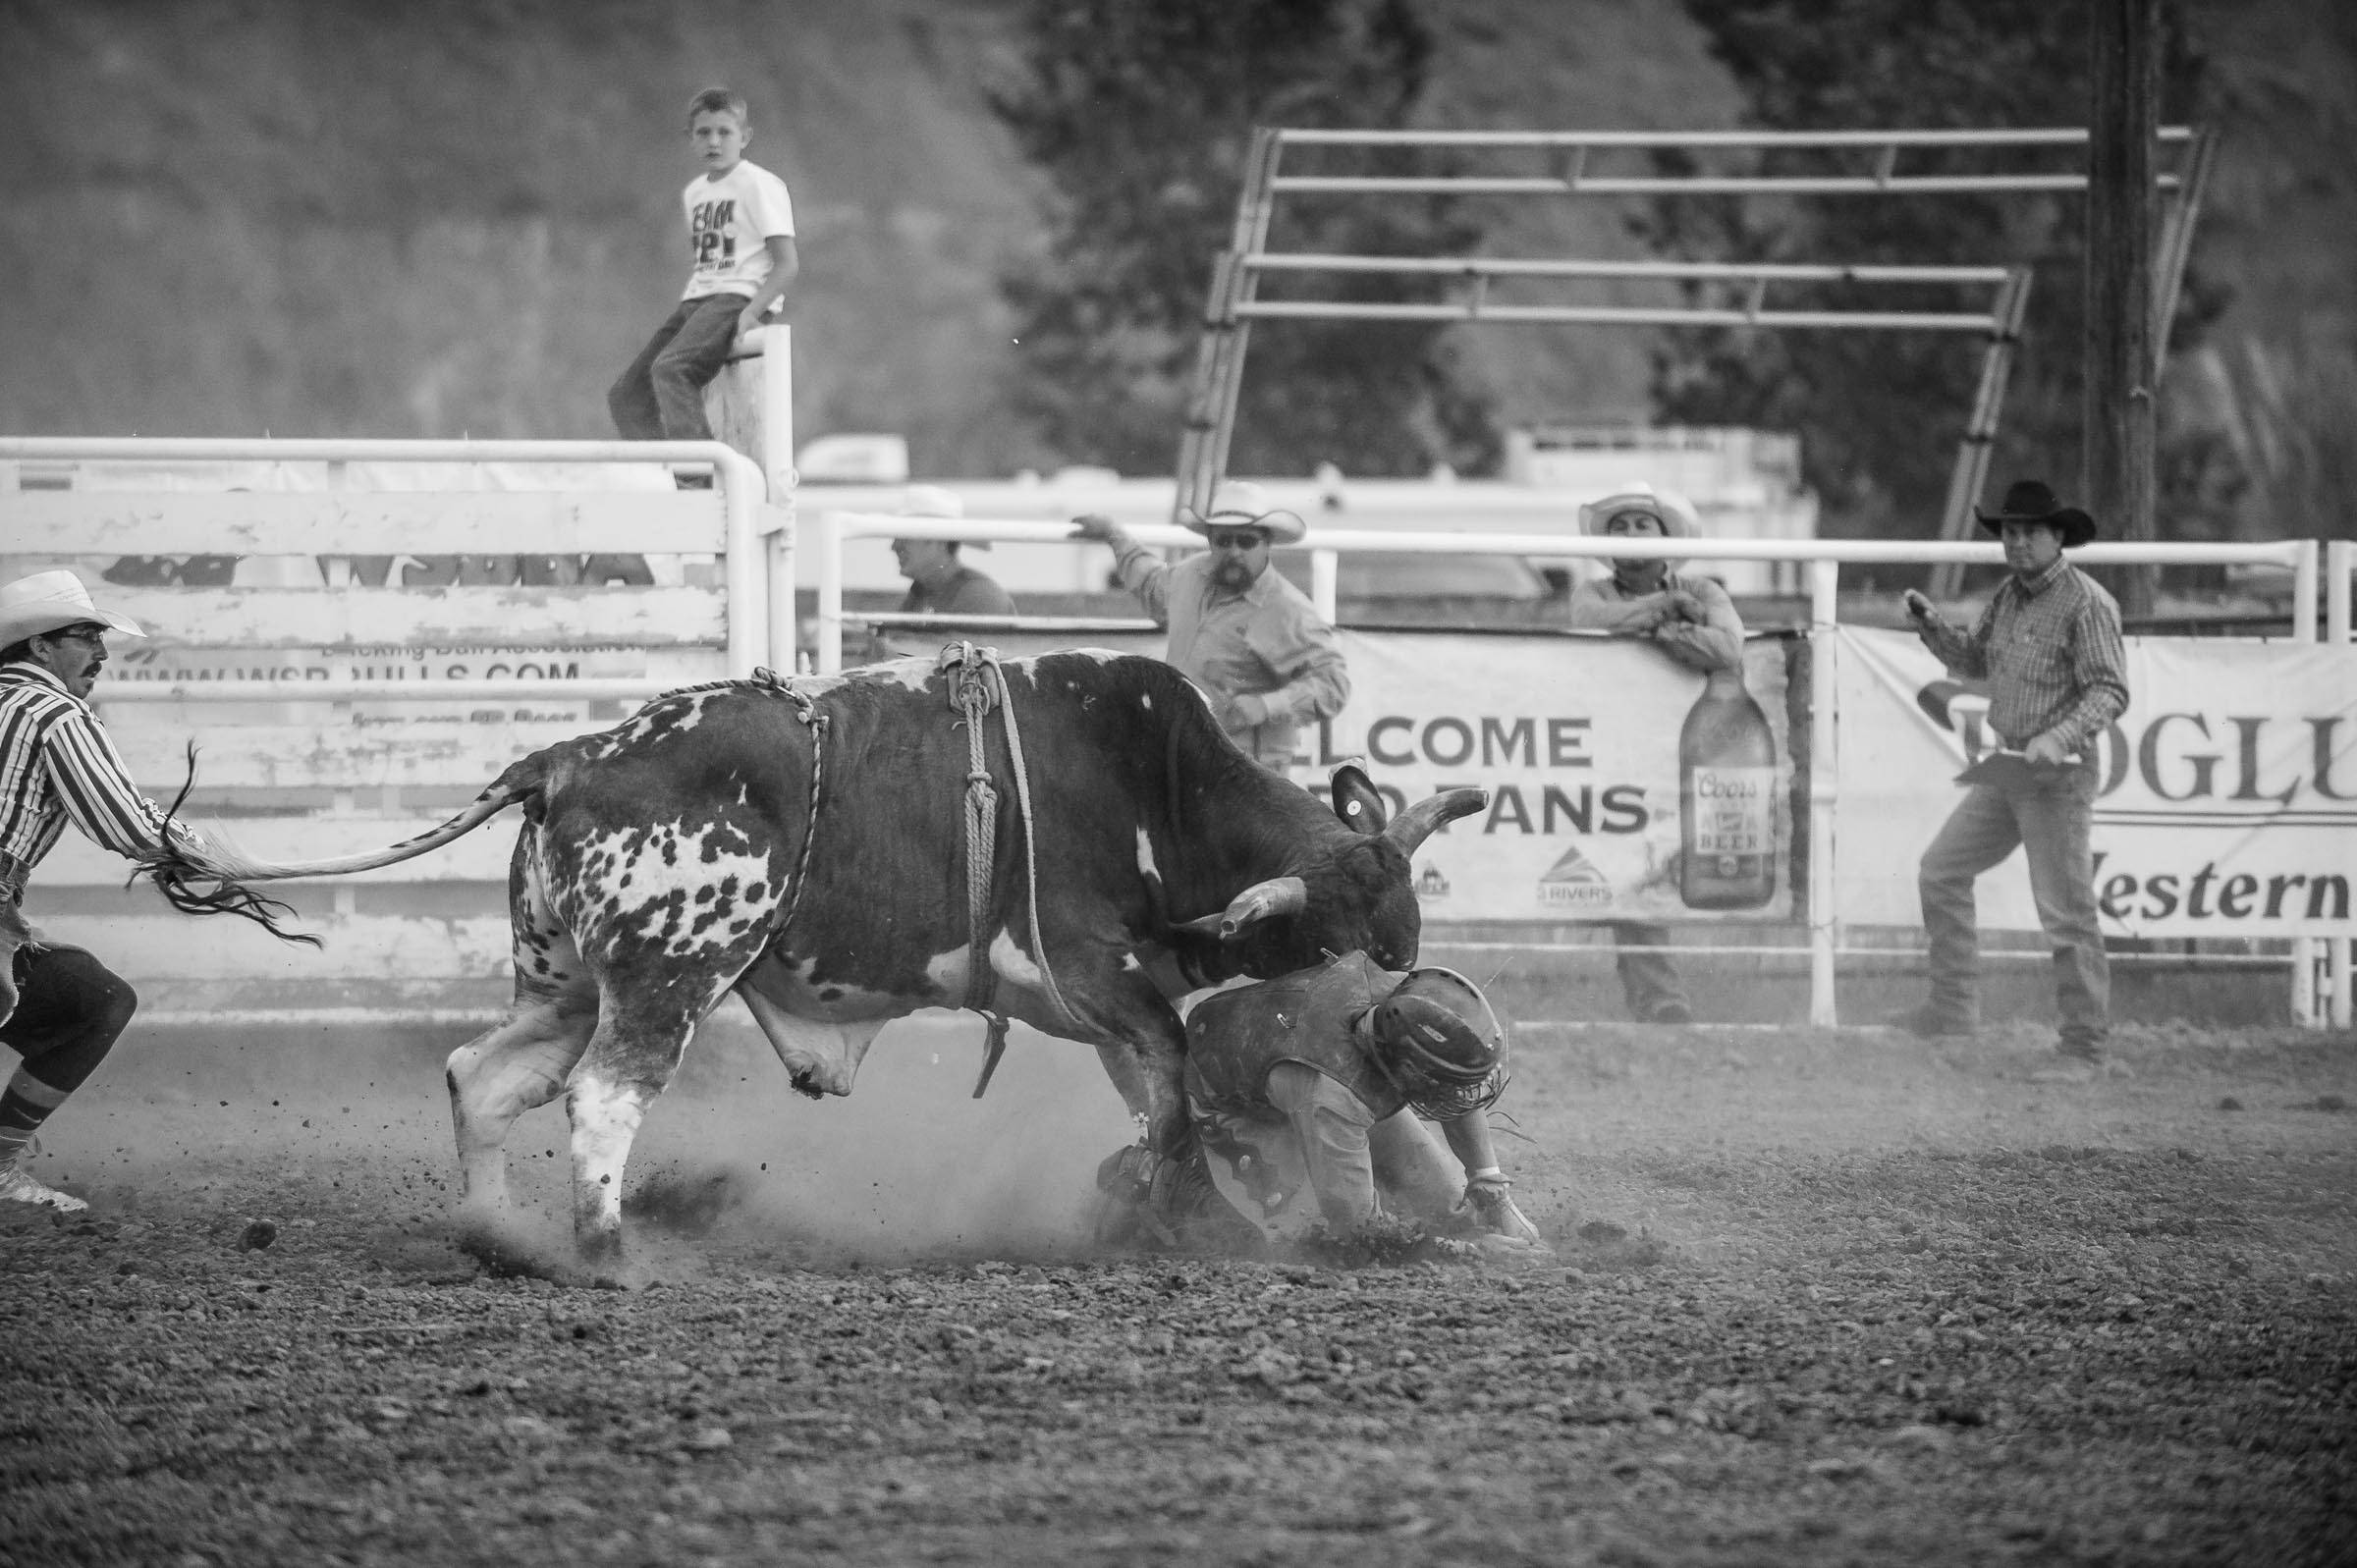 rodeo_whisky-bent_bynum-2679.JPG